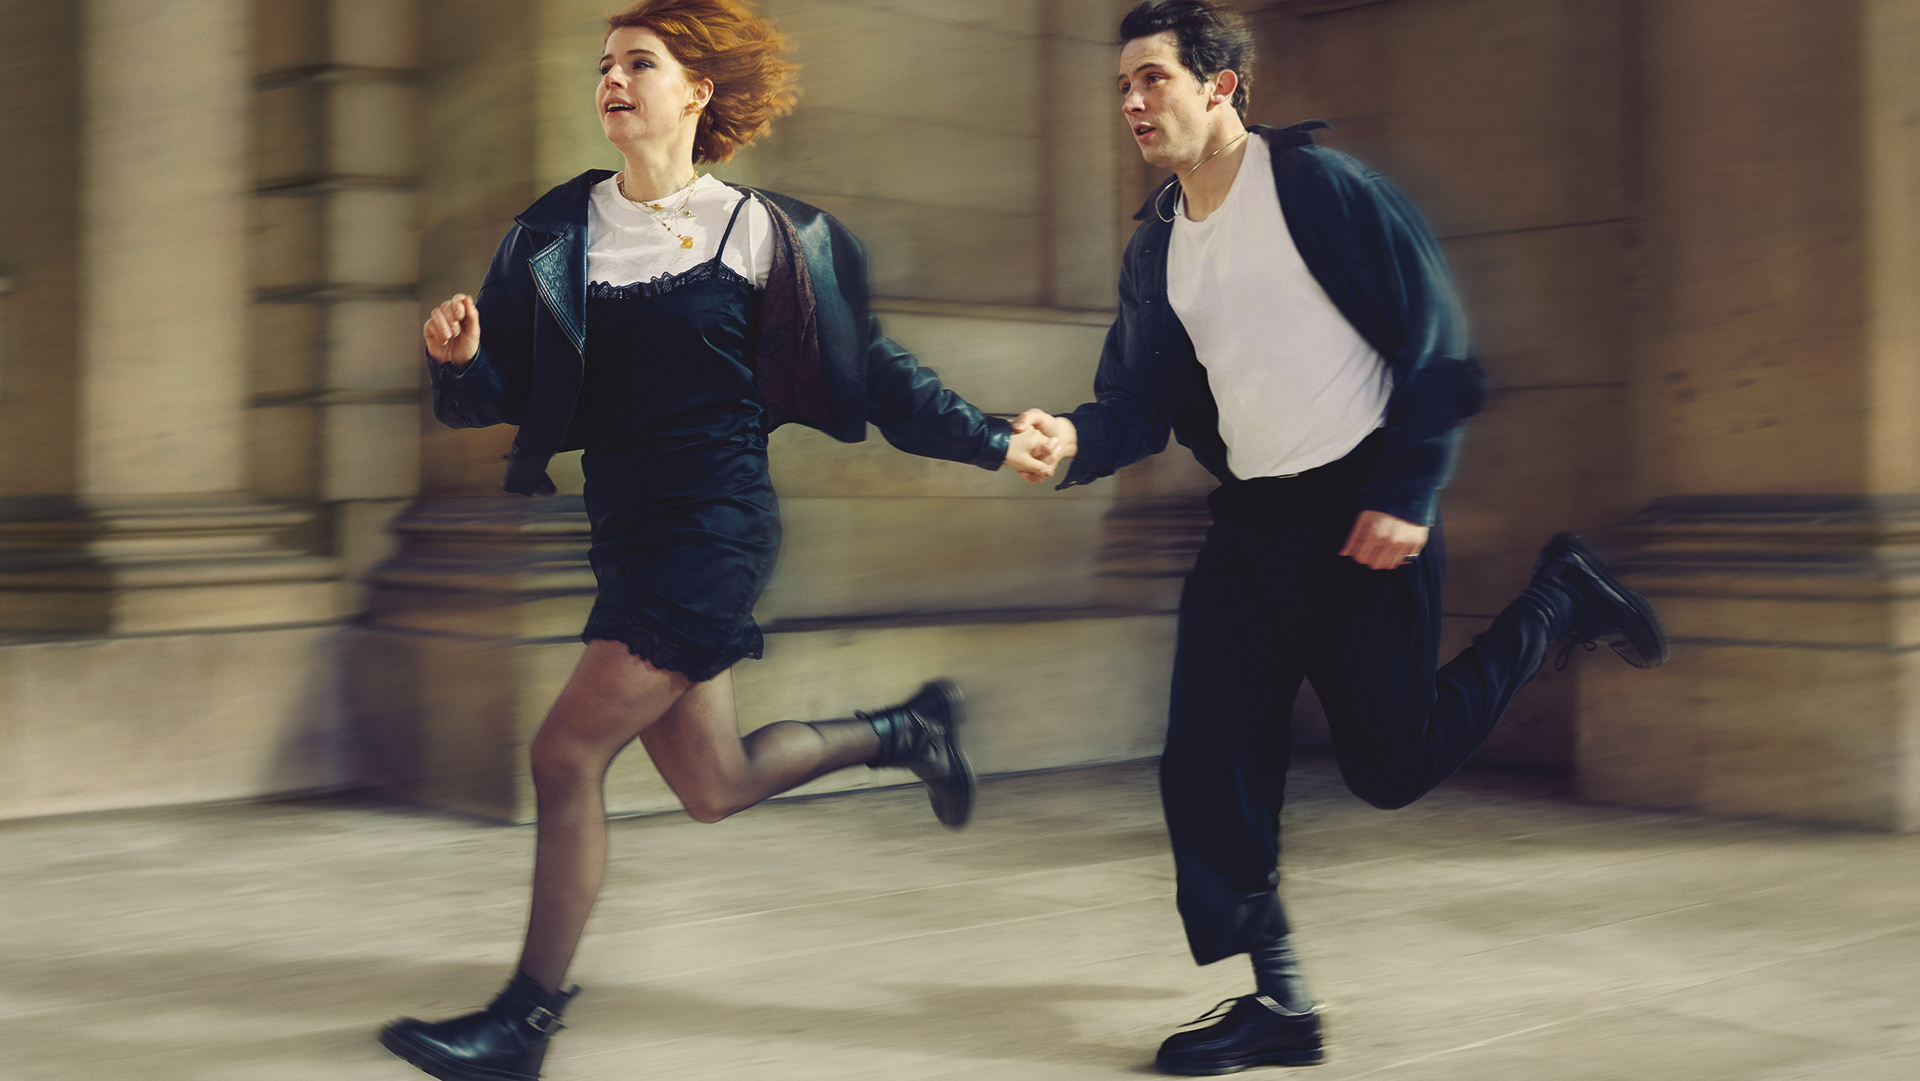 Jessie Buckley and Josh O'Connor as Juliet and Romeo in a contemporary setting, holding hands and running in front of a marble building facade.